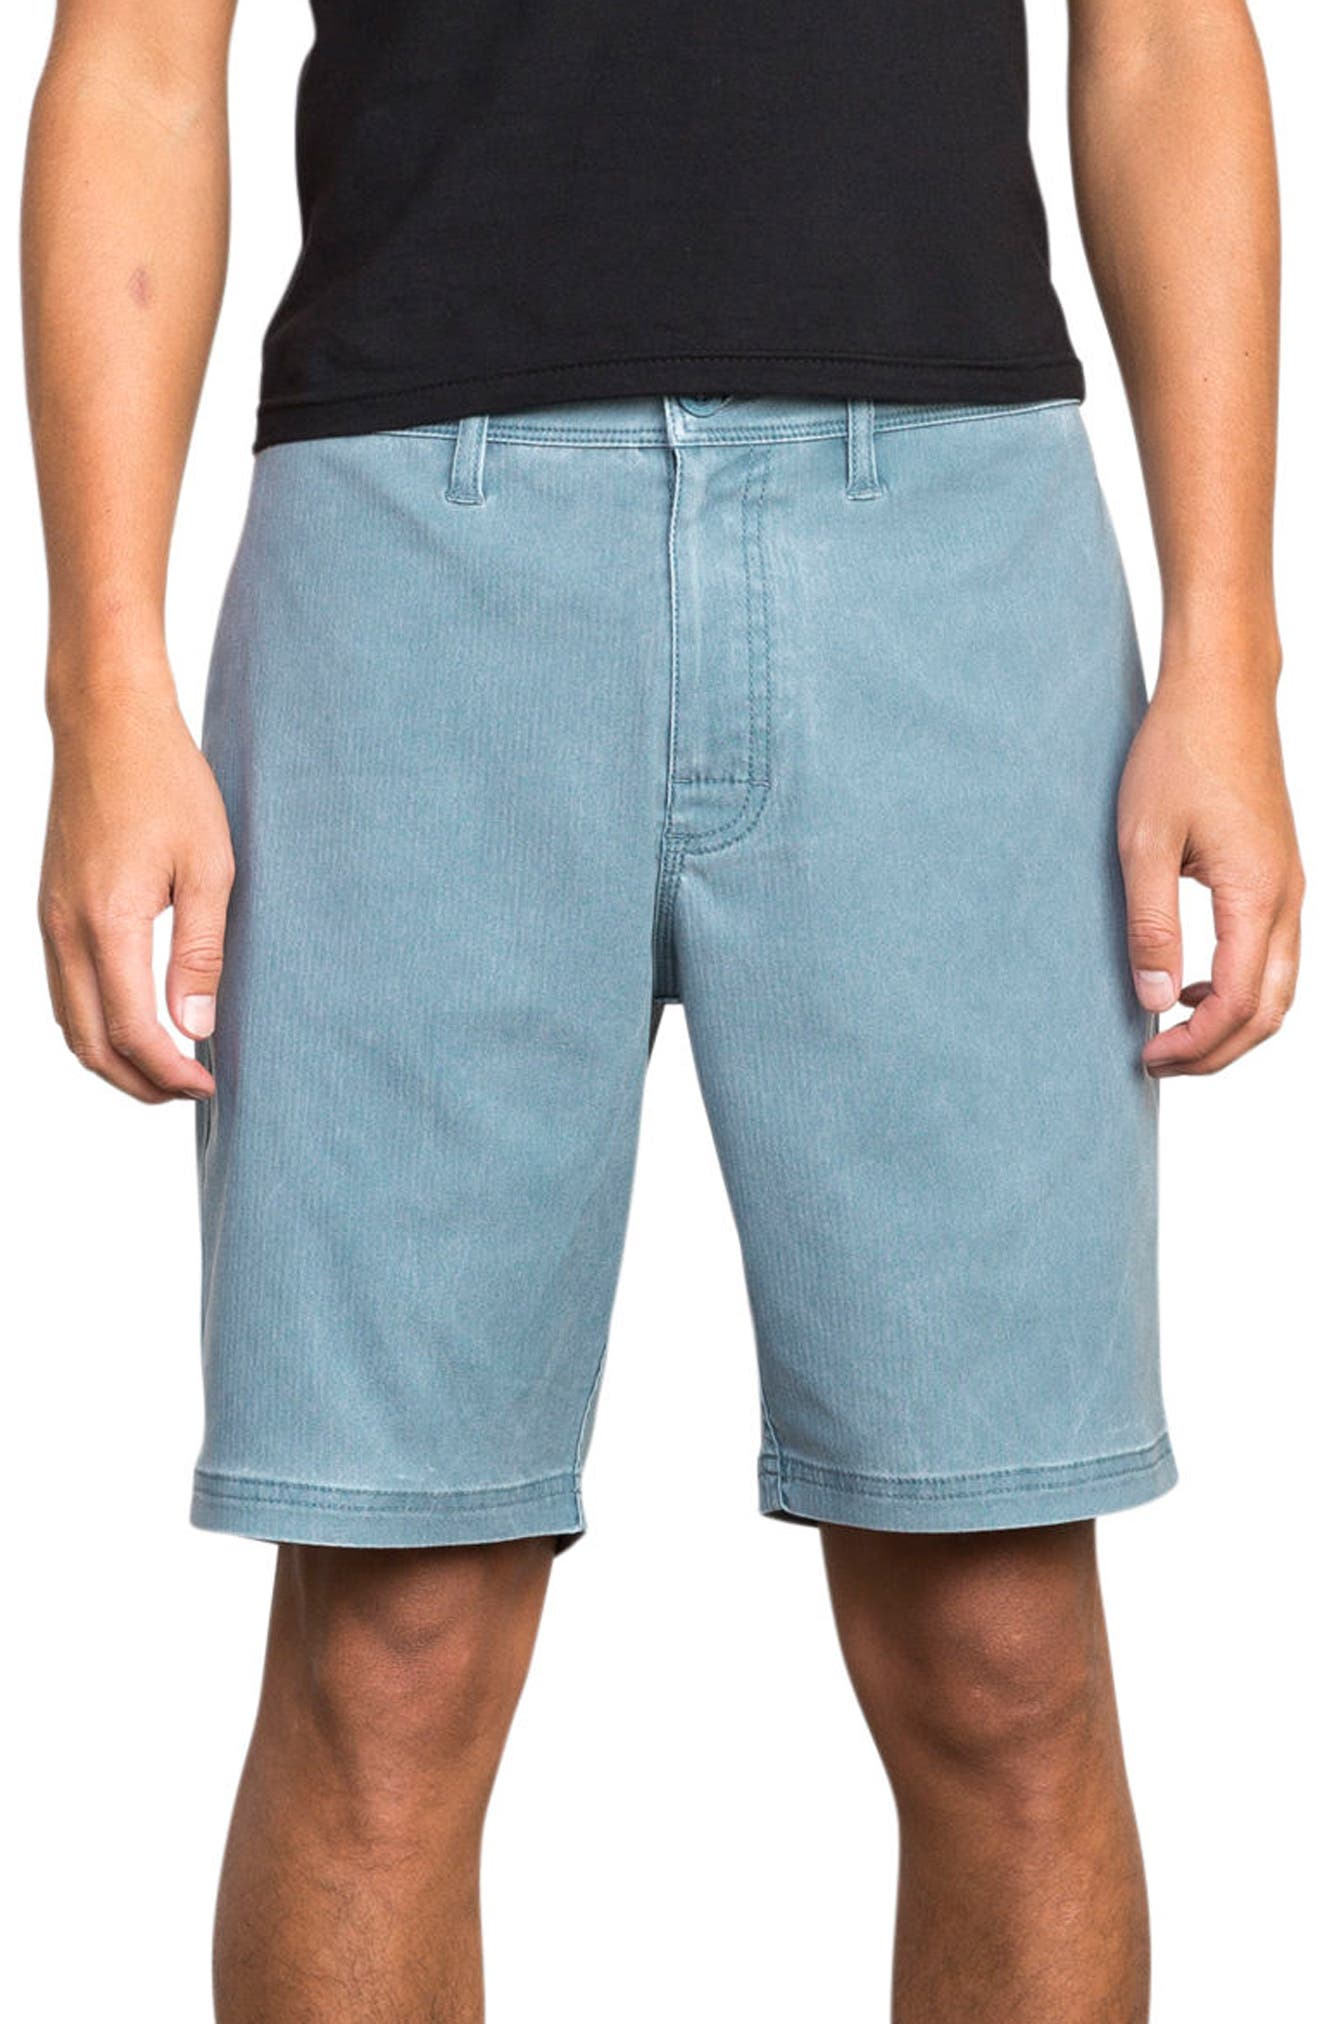 Django Hybrid Shorts,                             Main thumbnail 1, color,                             Blue Slate